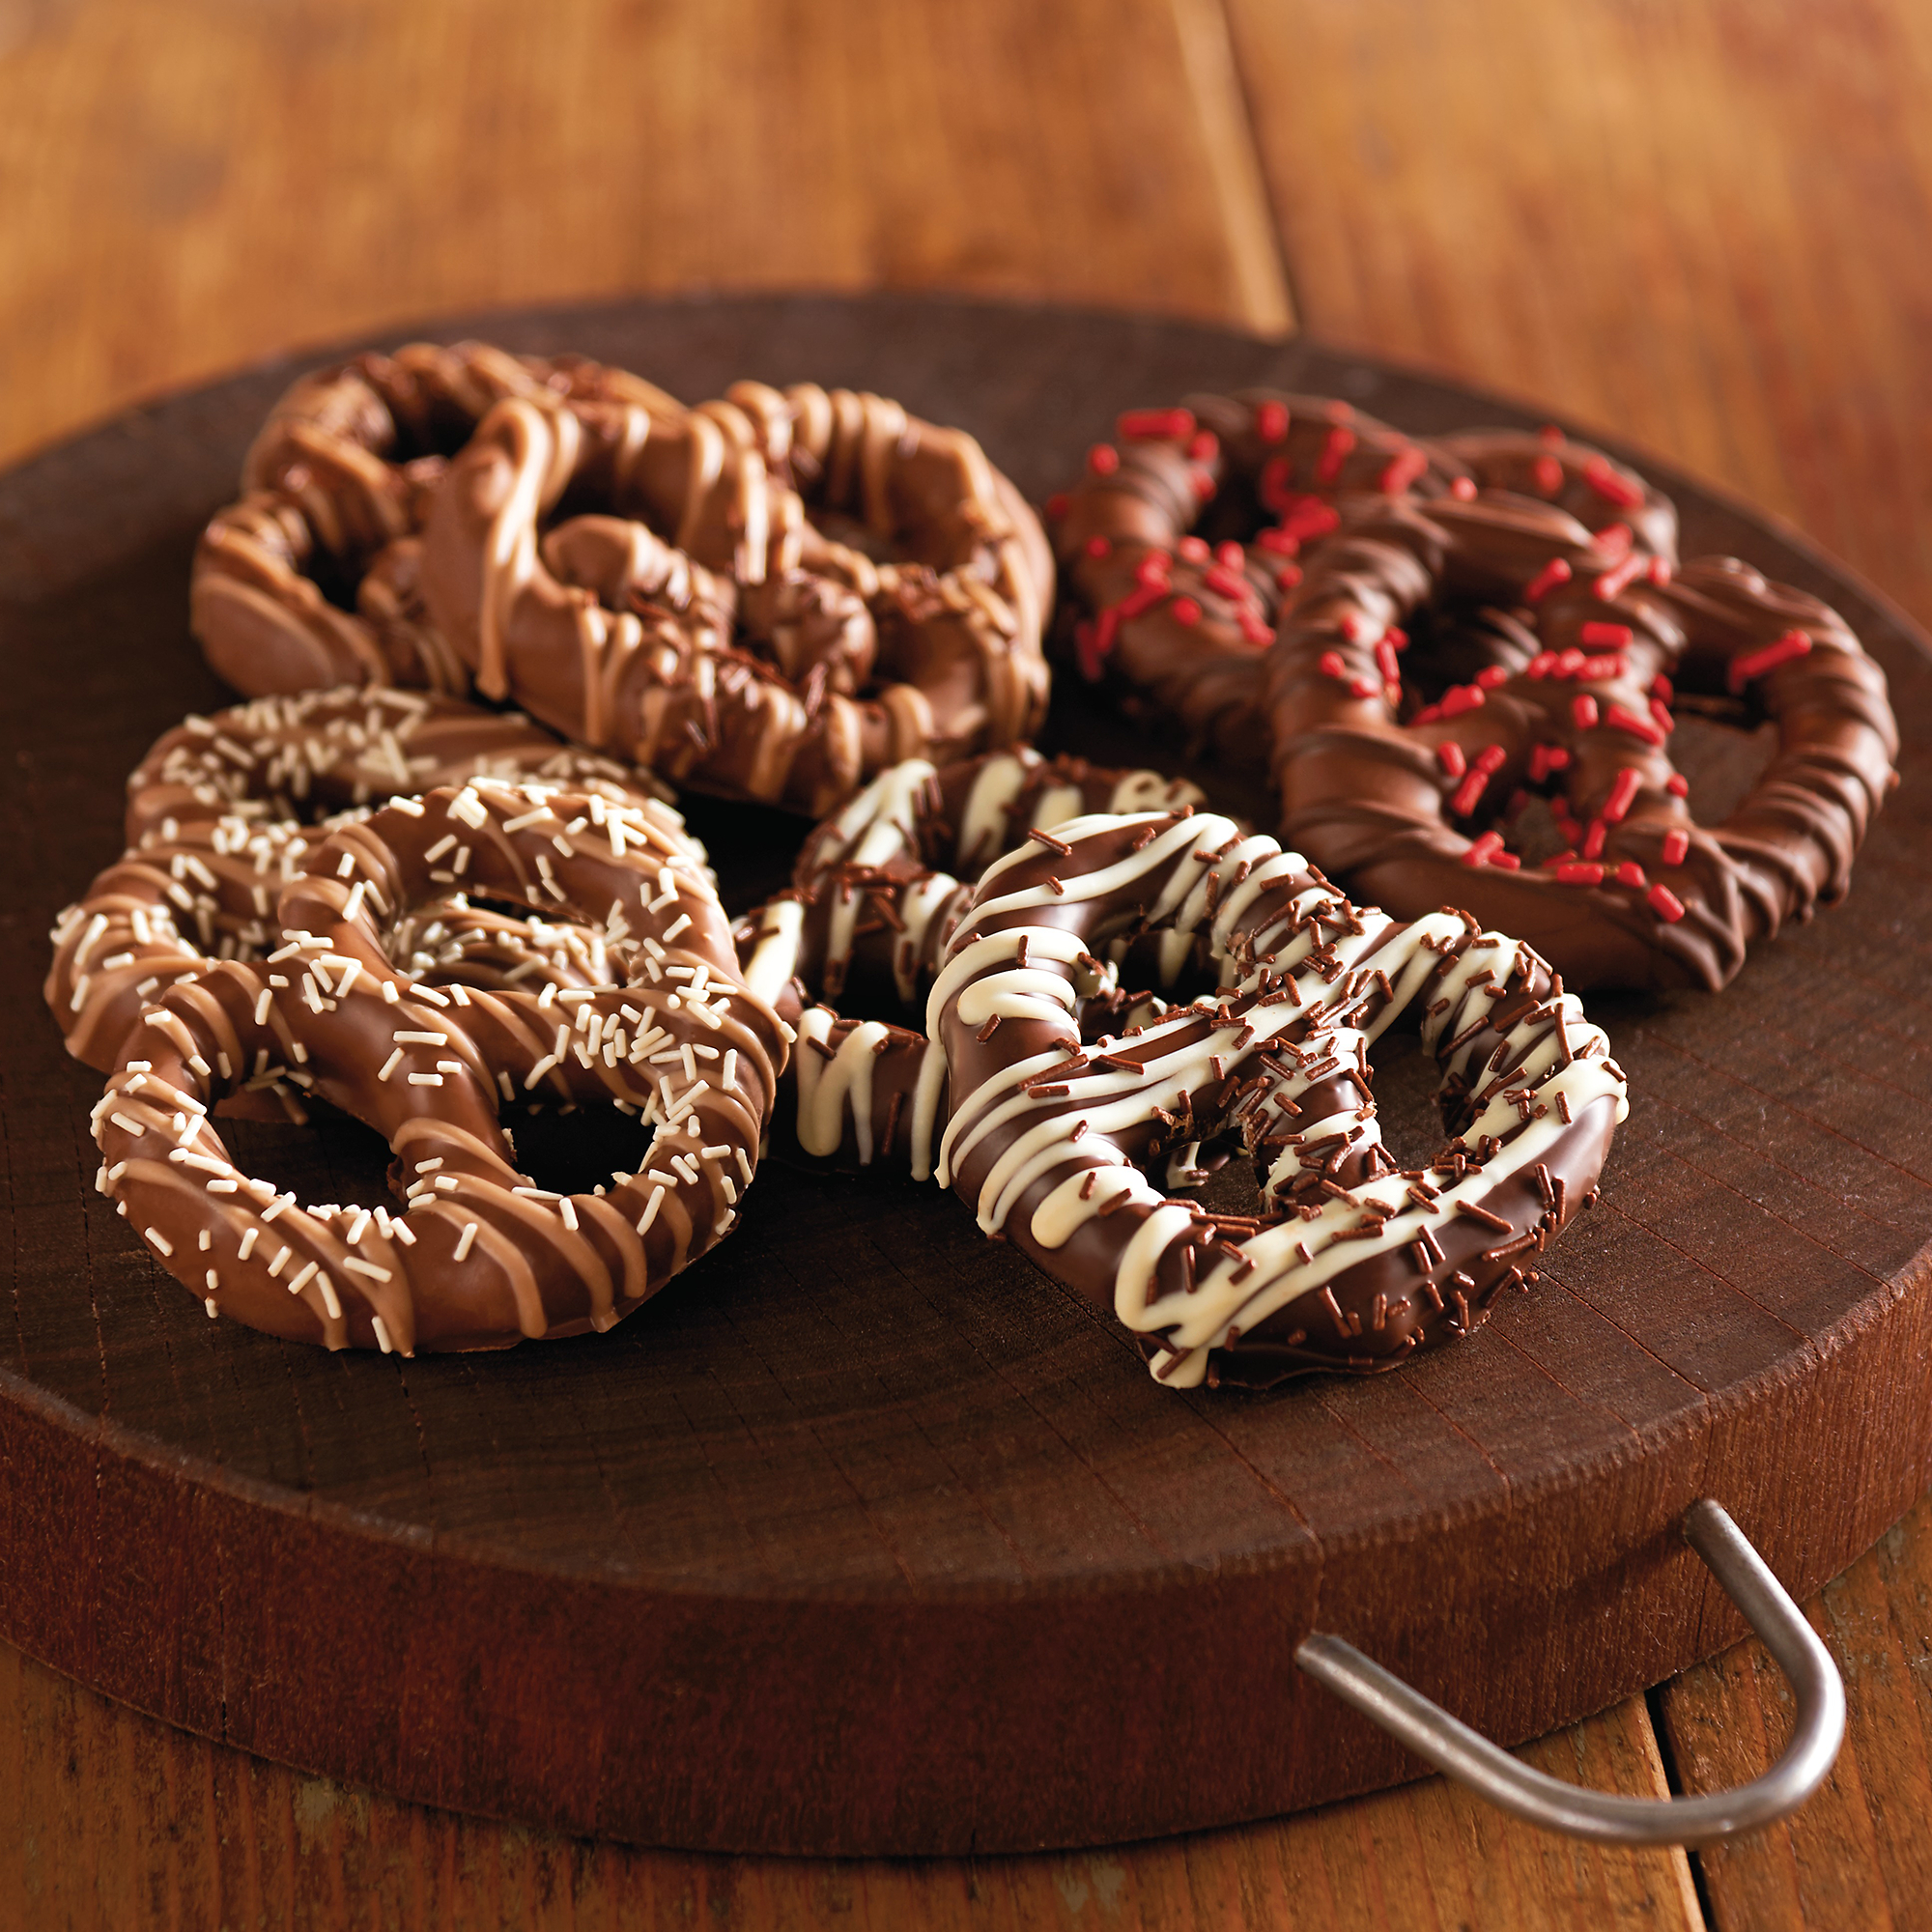 Chocolate Covered Pretzels | Chocolate Dipped Pretzels & Gifts